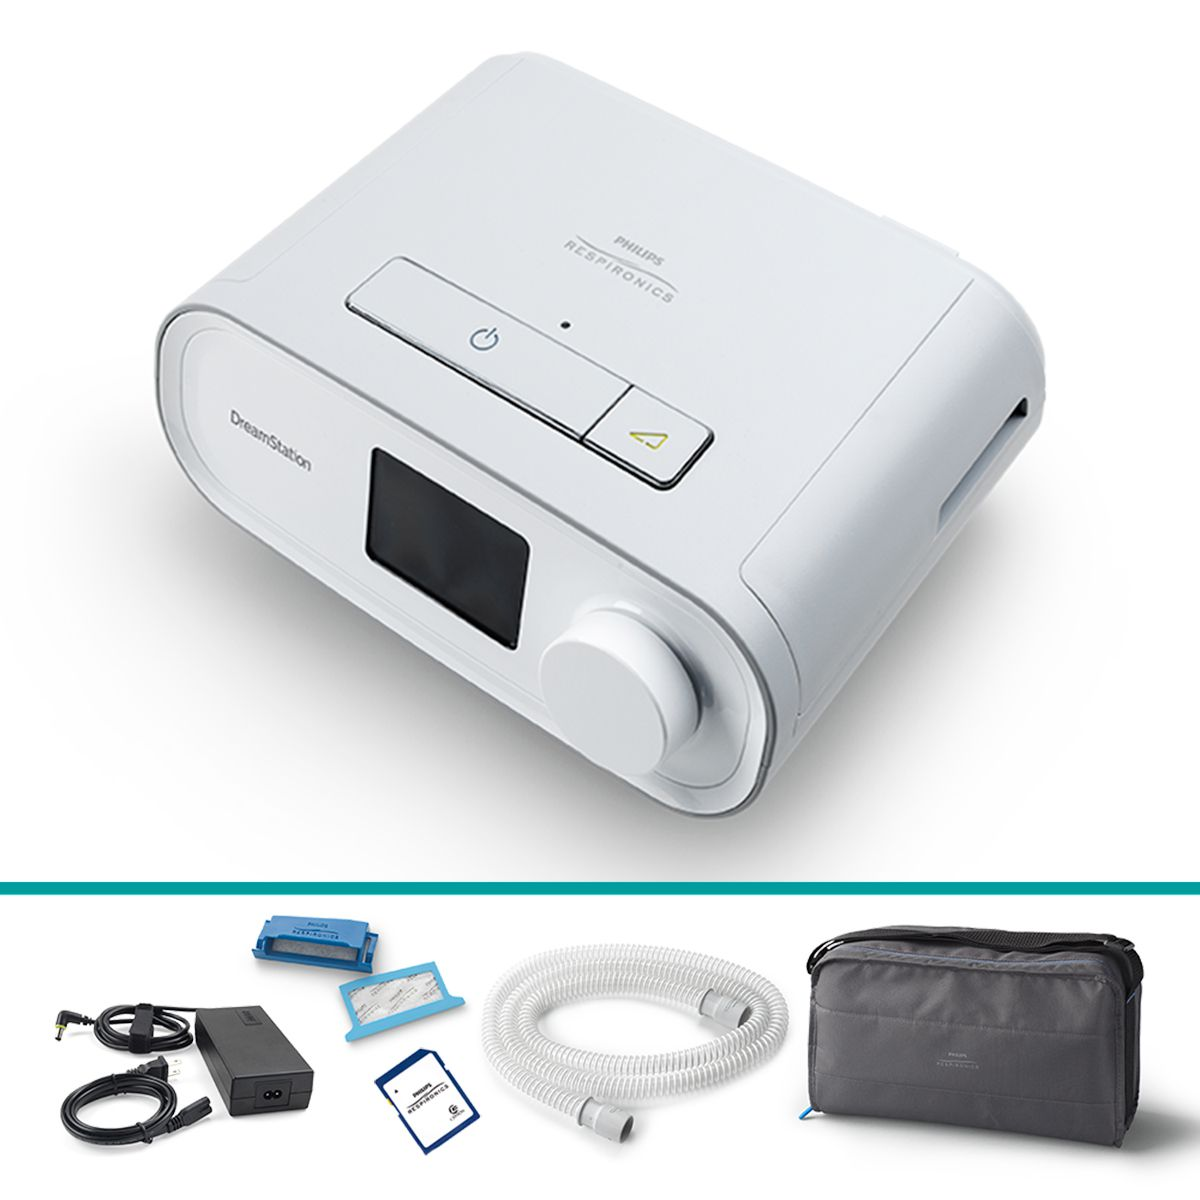 Kit CPAP Fixo DreamStation com Umidificador Philips Respironics